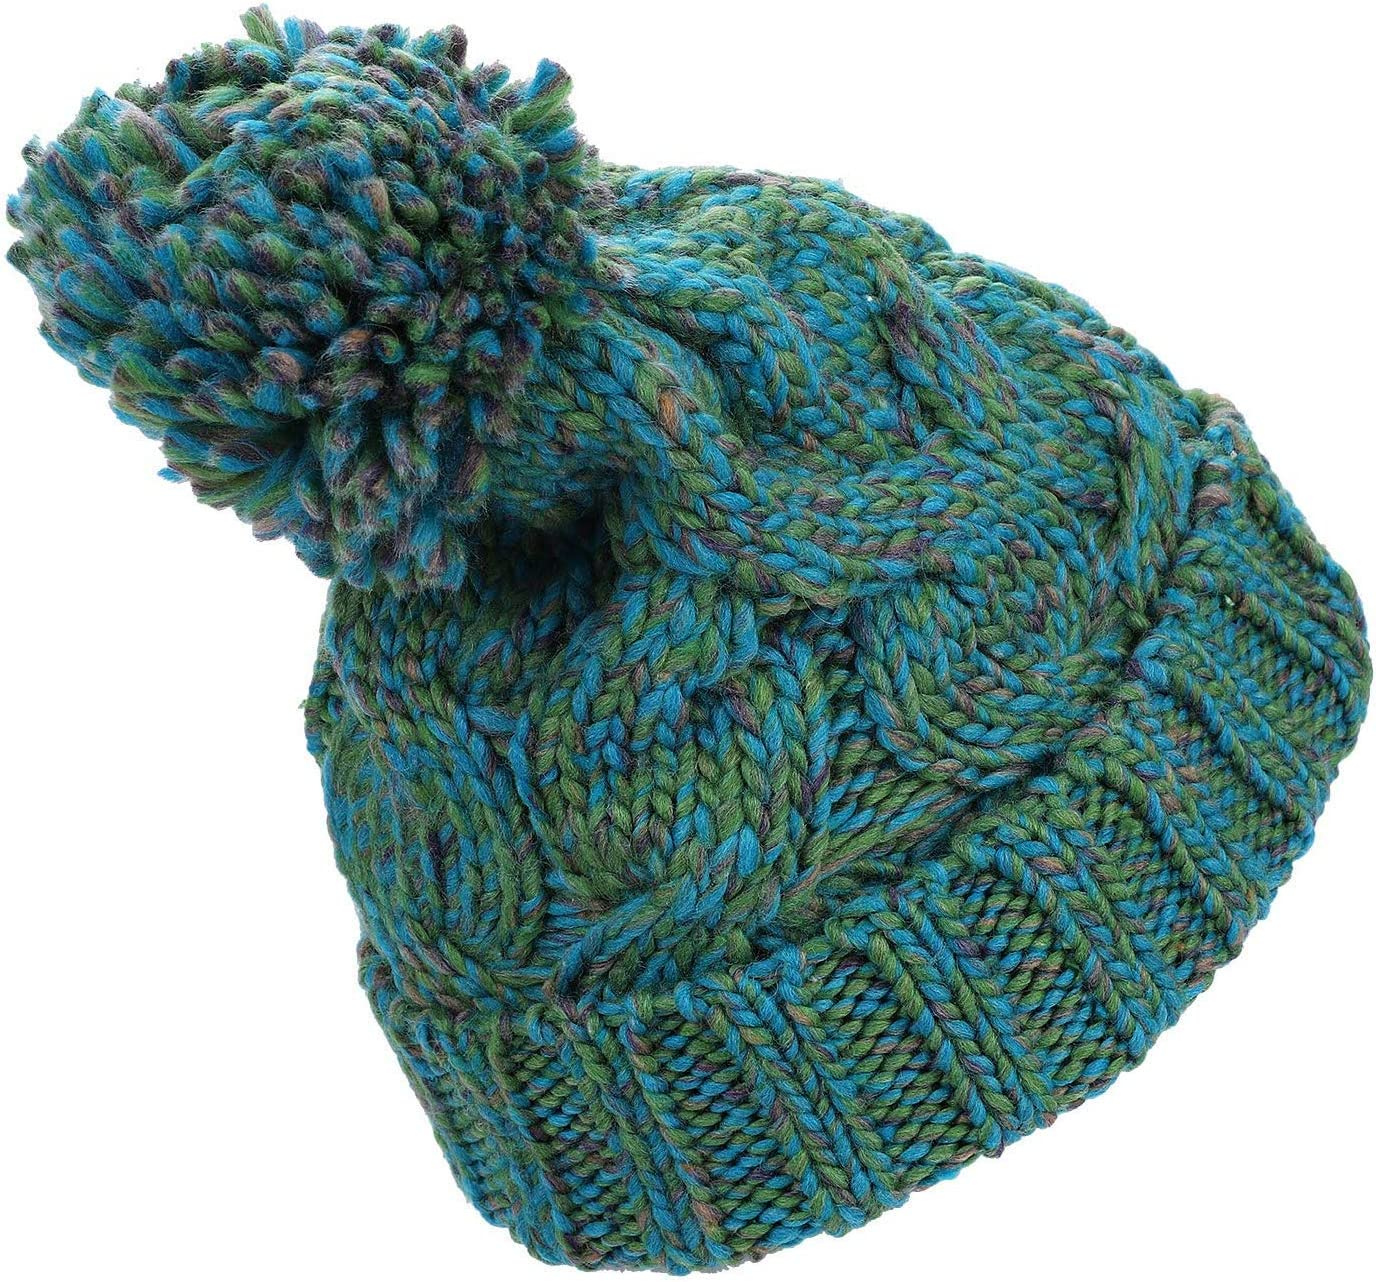 Unisex Winter Thermal Knitted Beanie Hat Pom Pom Bobble Hat Warm Slouch Crochet Hats Thicken Ear Cuff Hat Mixed Colour Chunky Ski Cap Pompon Hemming Cap for Outdoor Snowboard Walking Skating Running